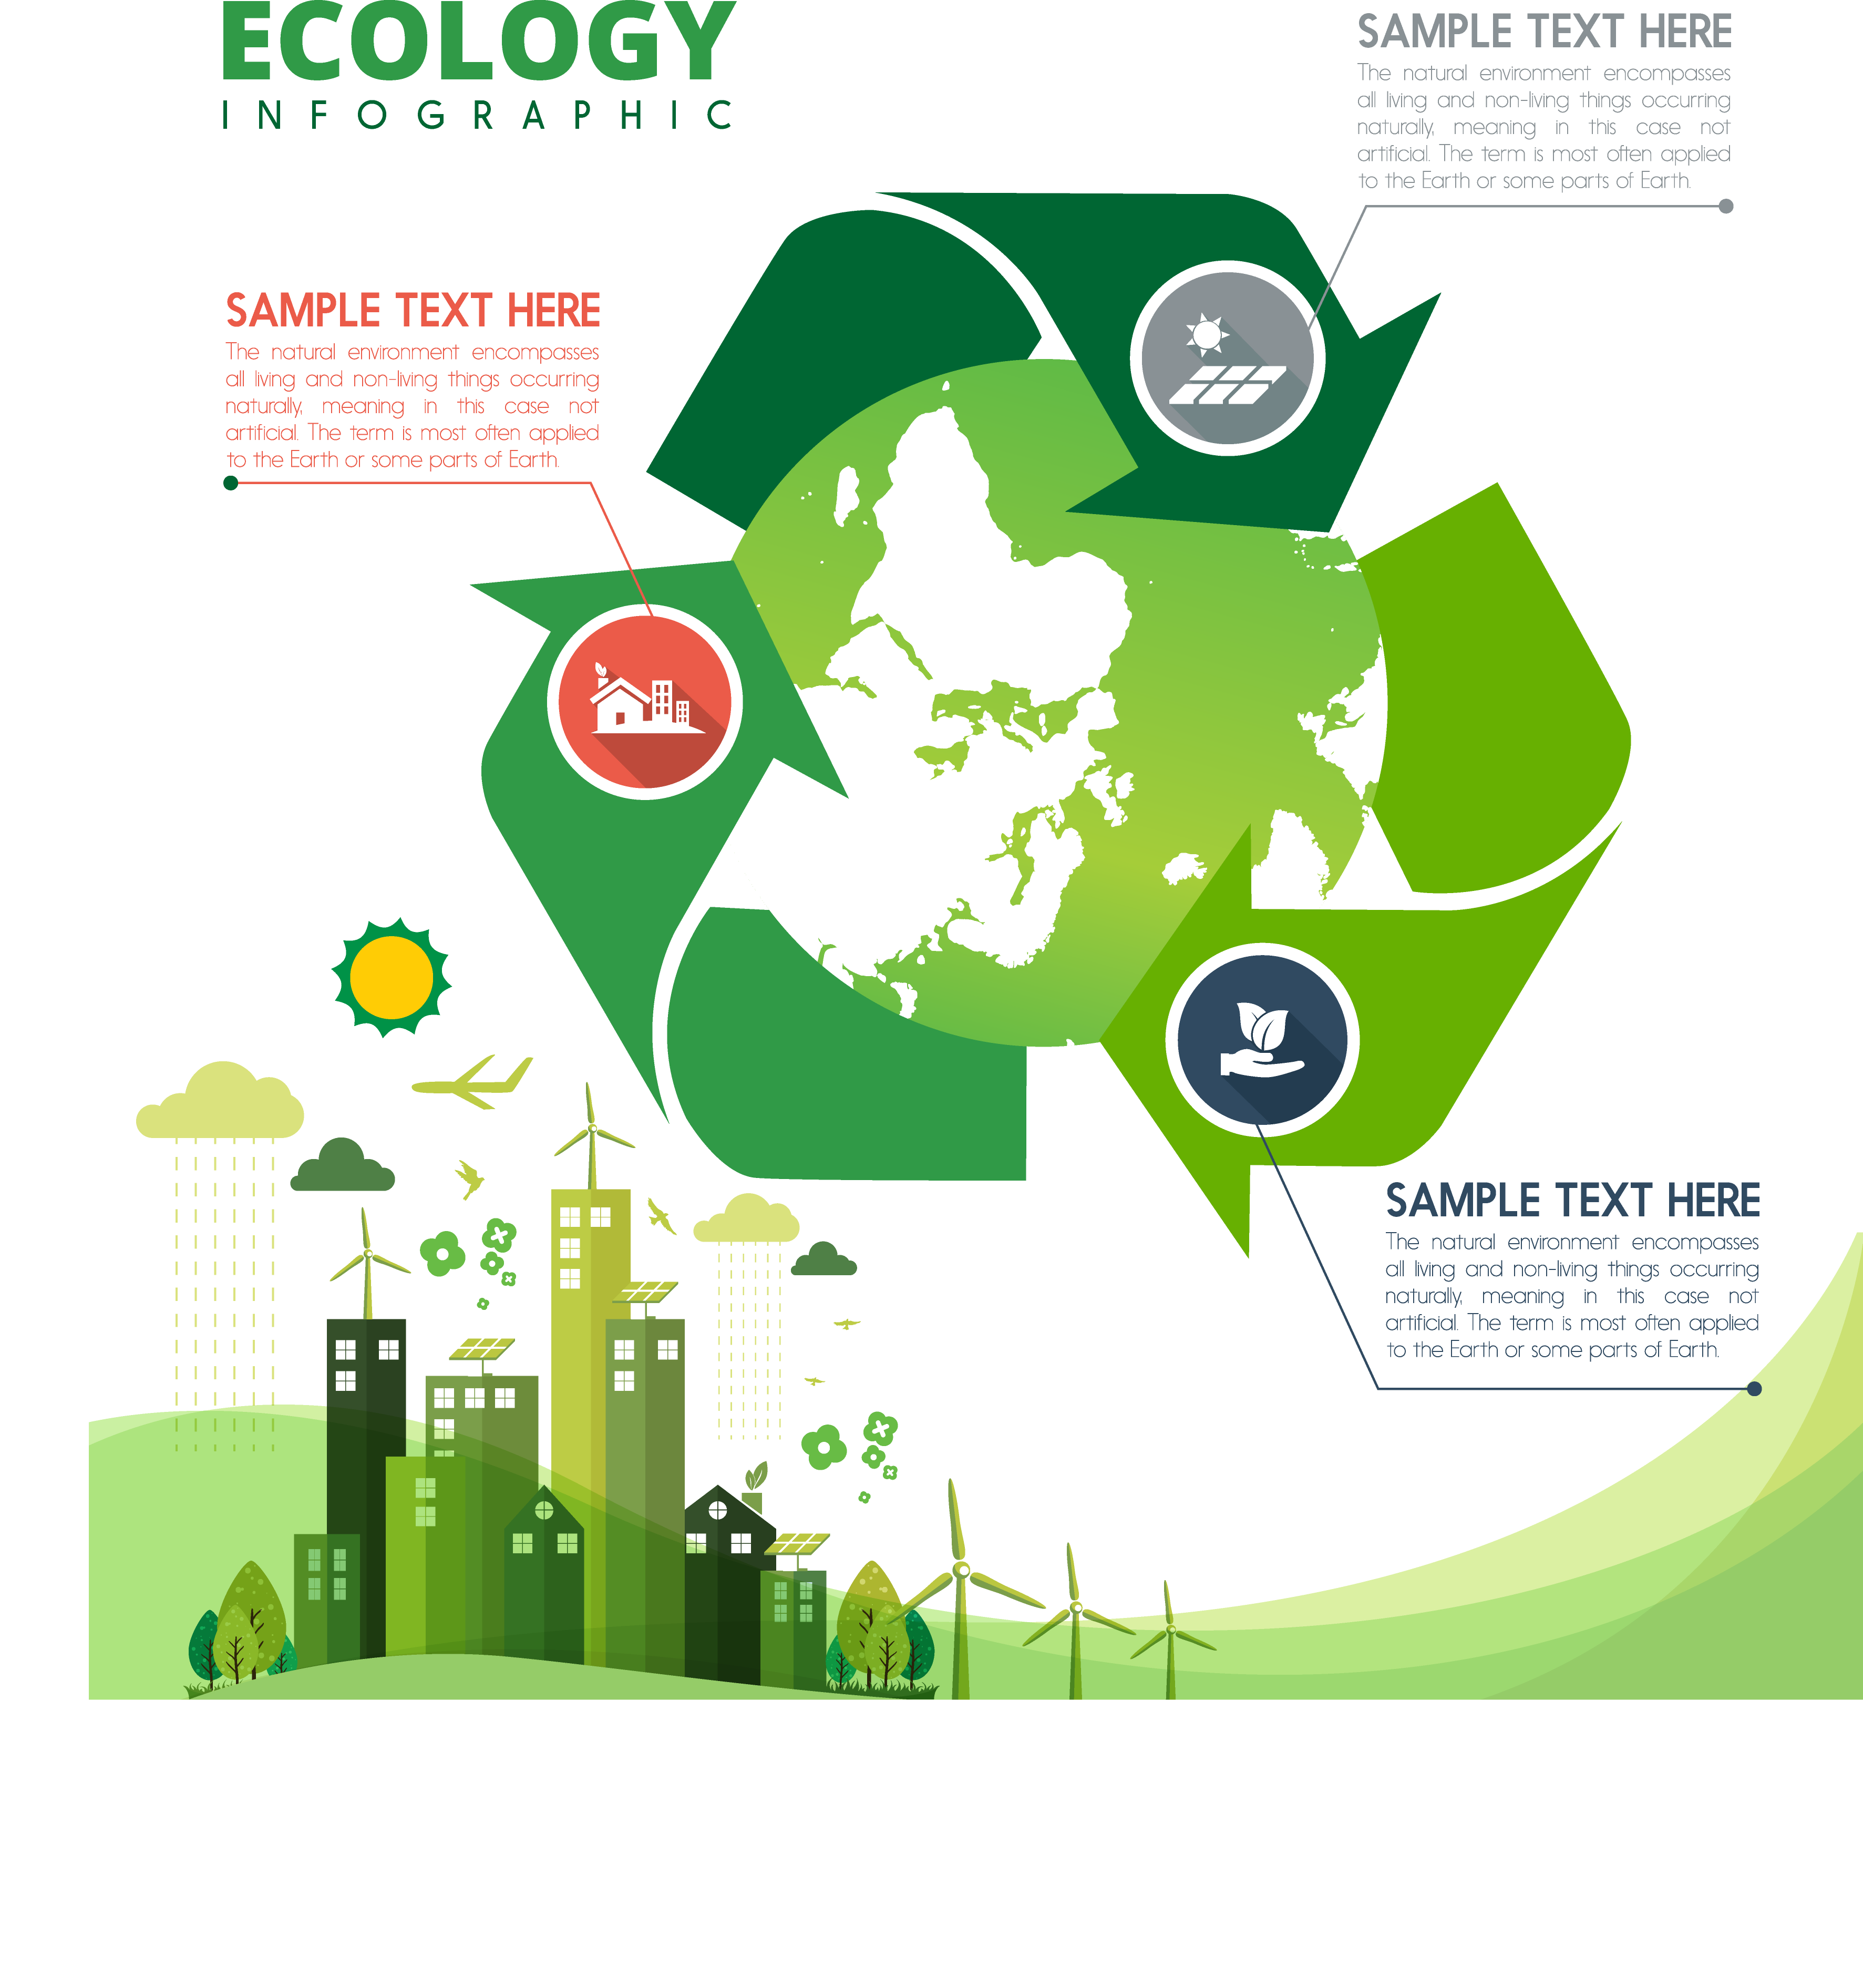 Environment vector infographic. Recycling symbol ecology icon